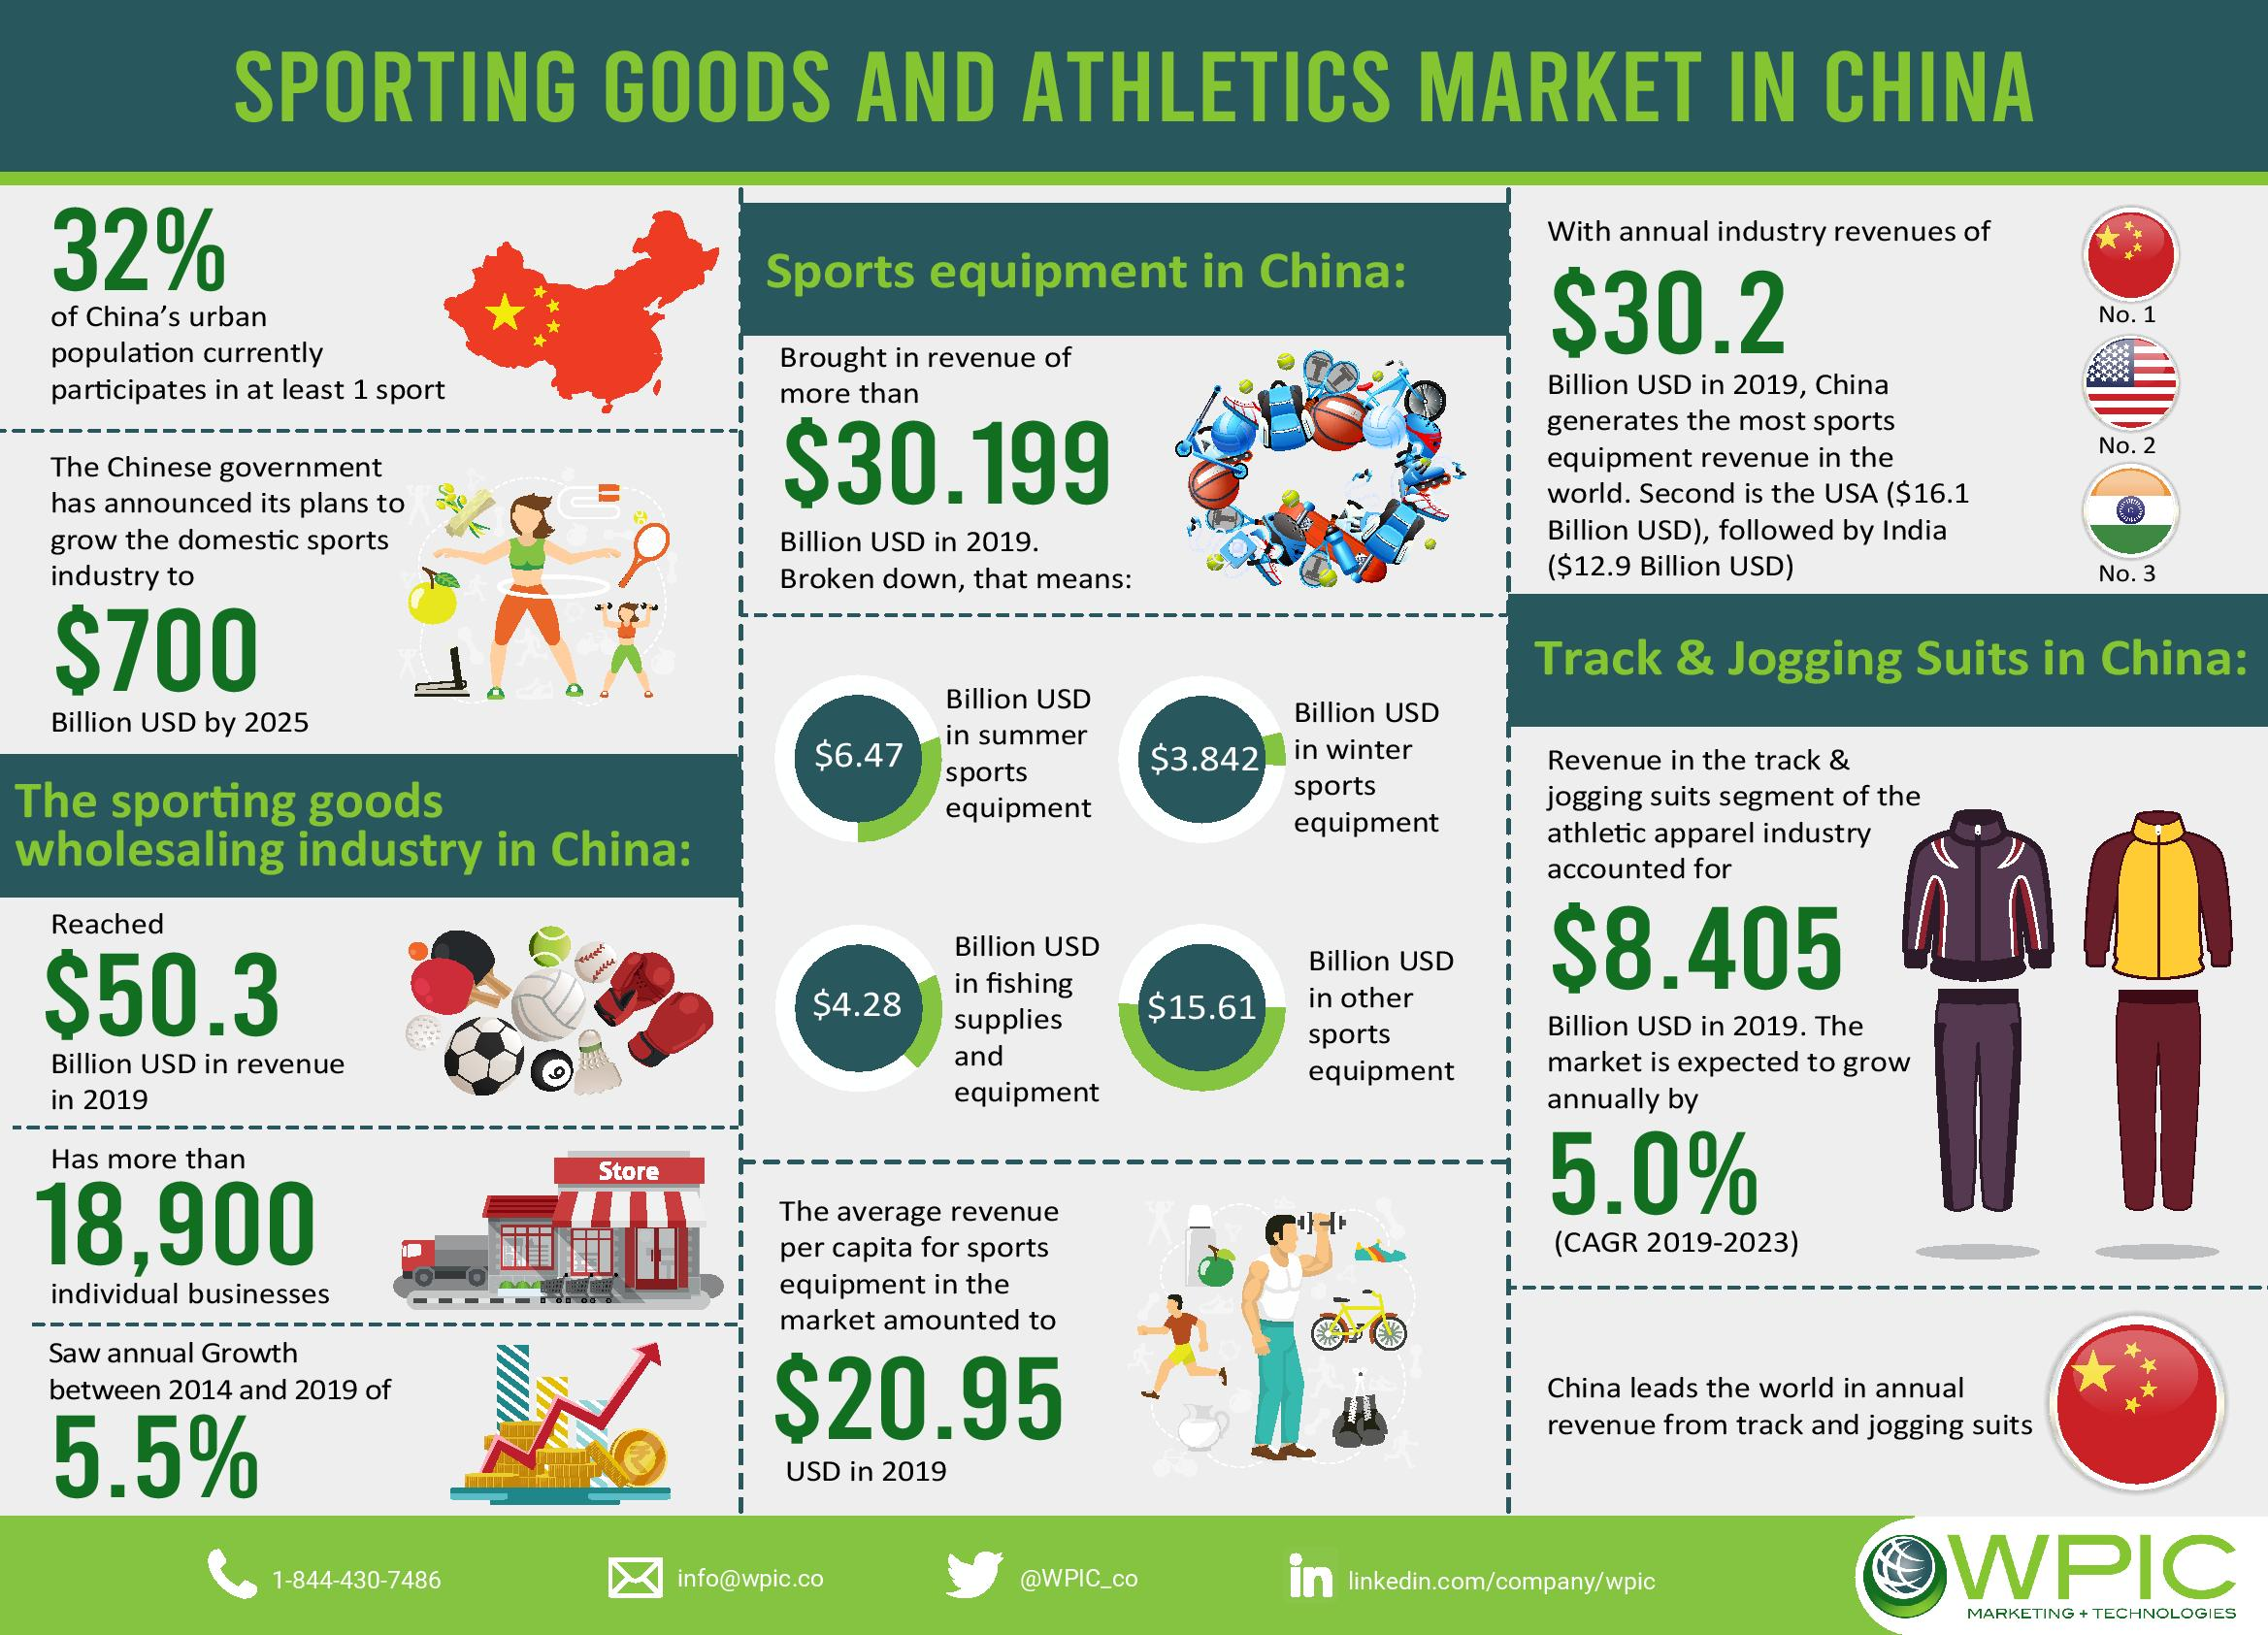 Sporting goods and athletics market in China infographic